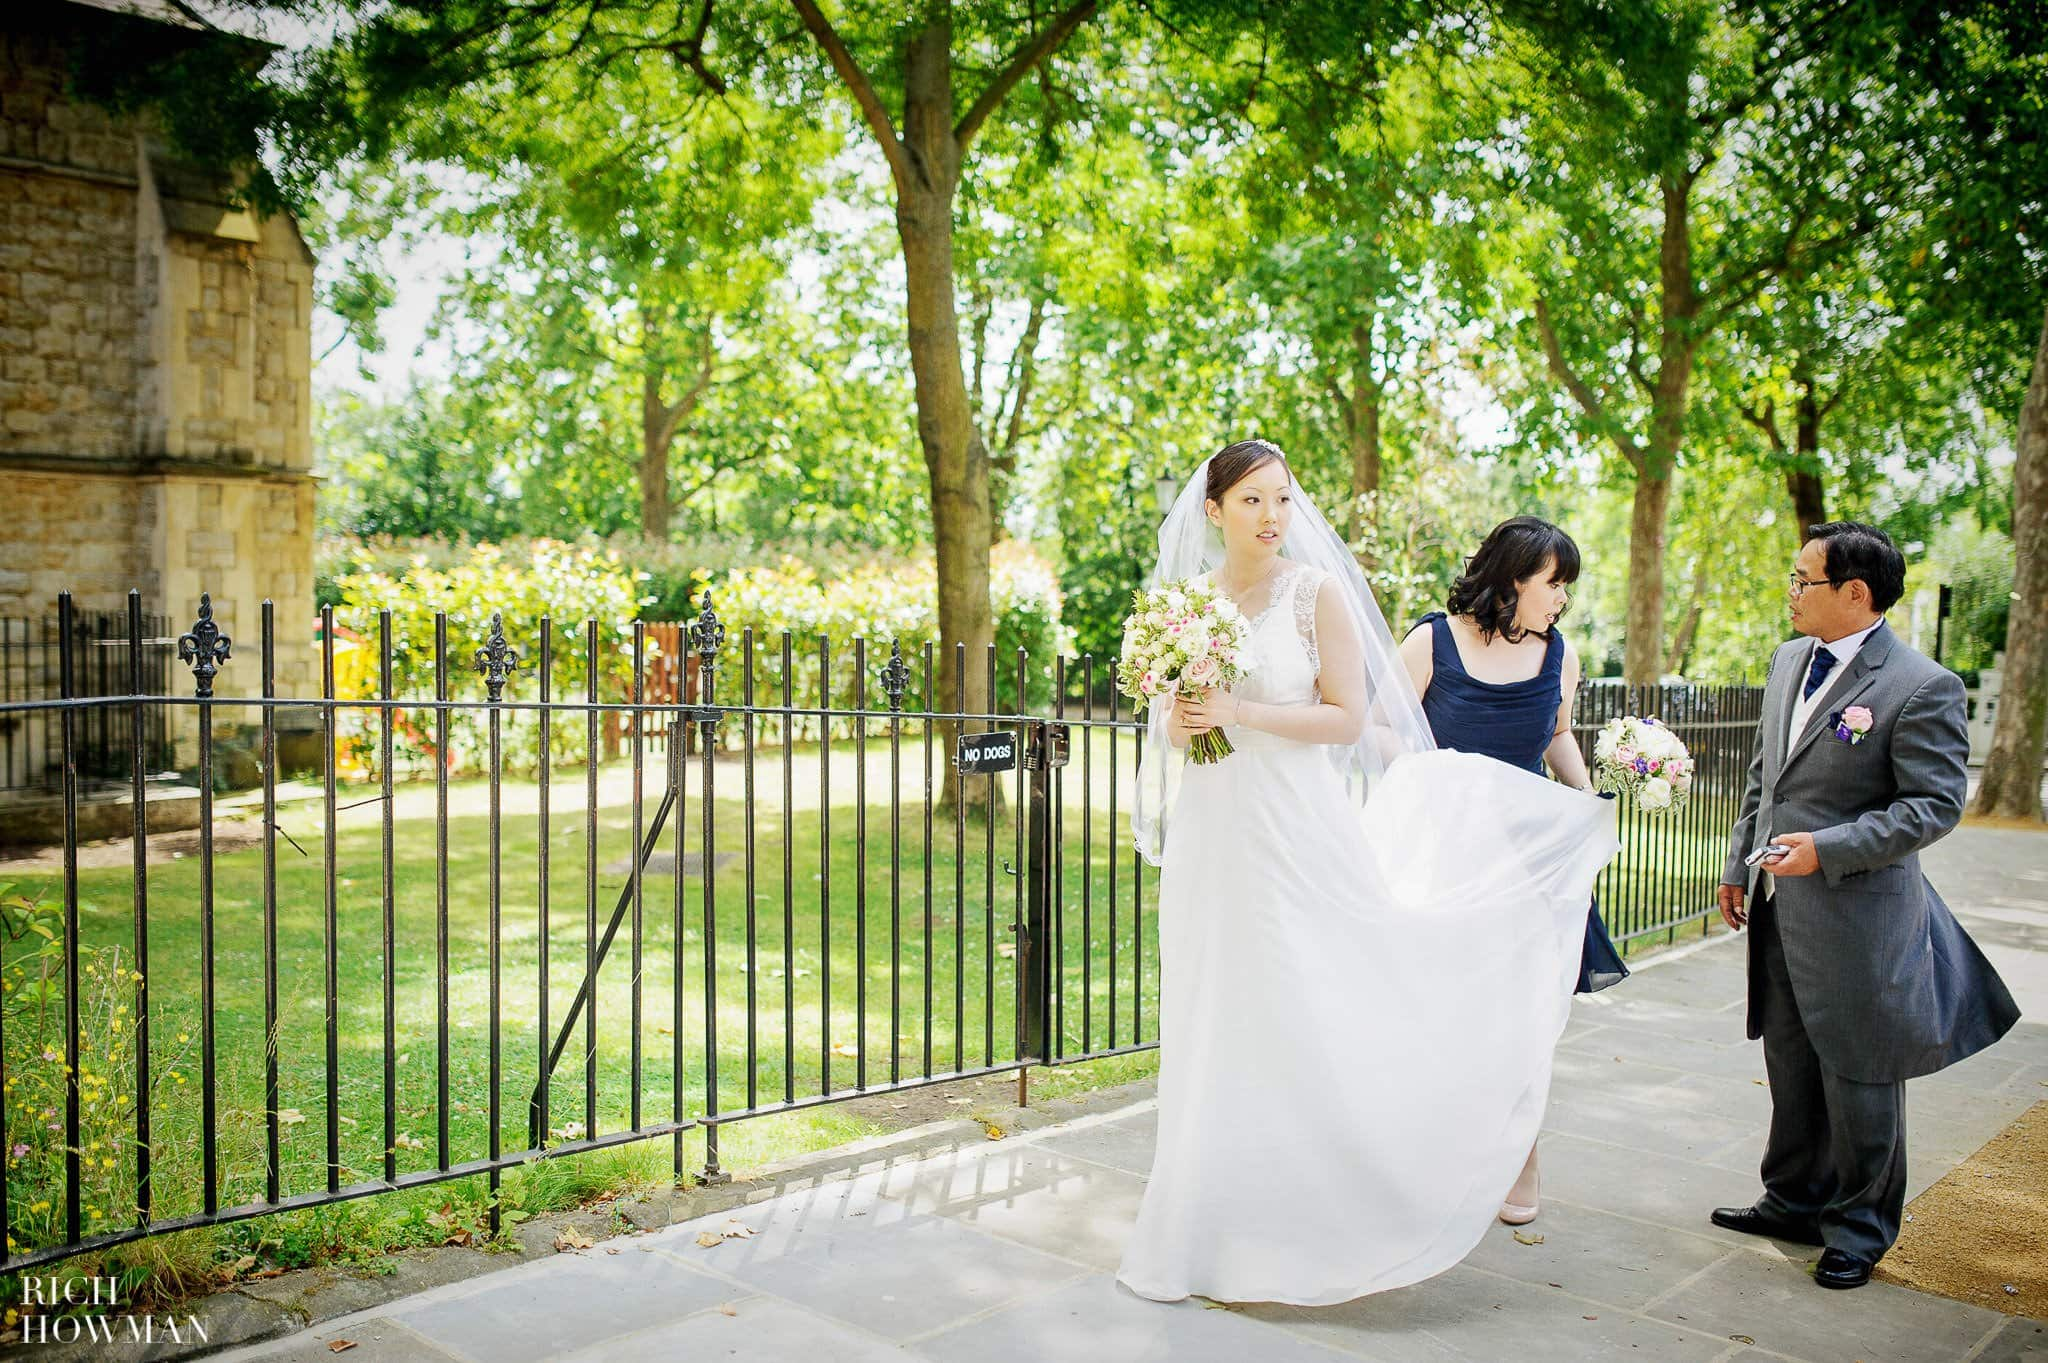 Notting Hill Wedding | Wedding Photographer London - Rich Howman 10